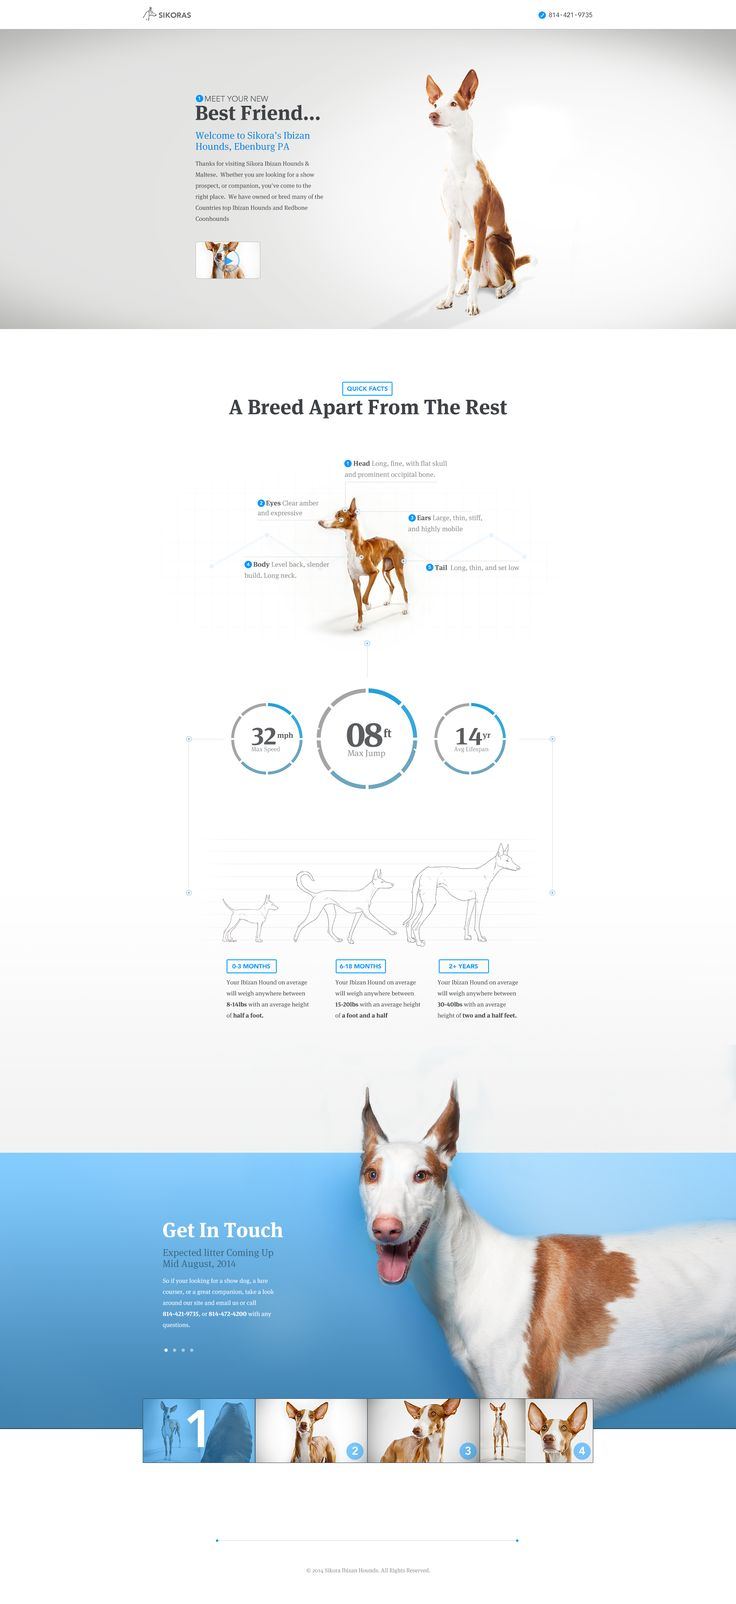 Marketing Experience Challenge - Sikora Ibizan Hounds by Brandon Termini for Handsome